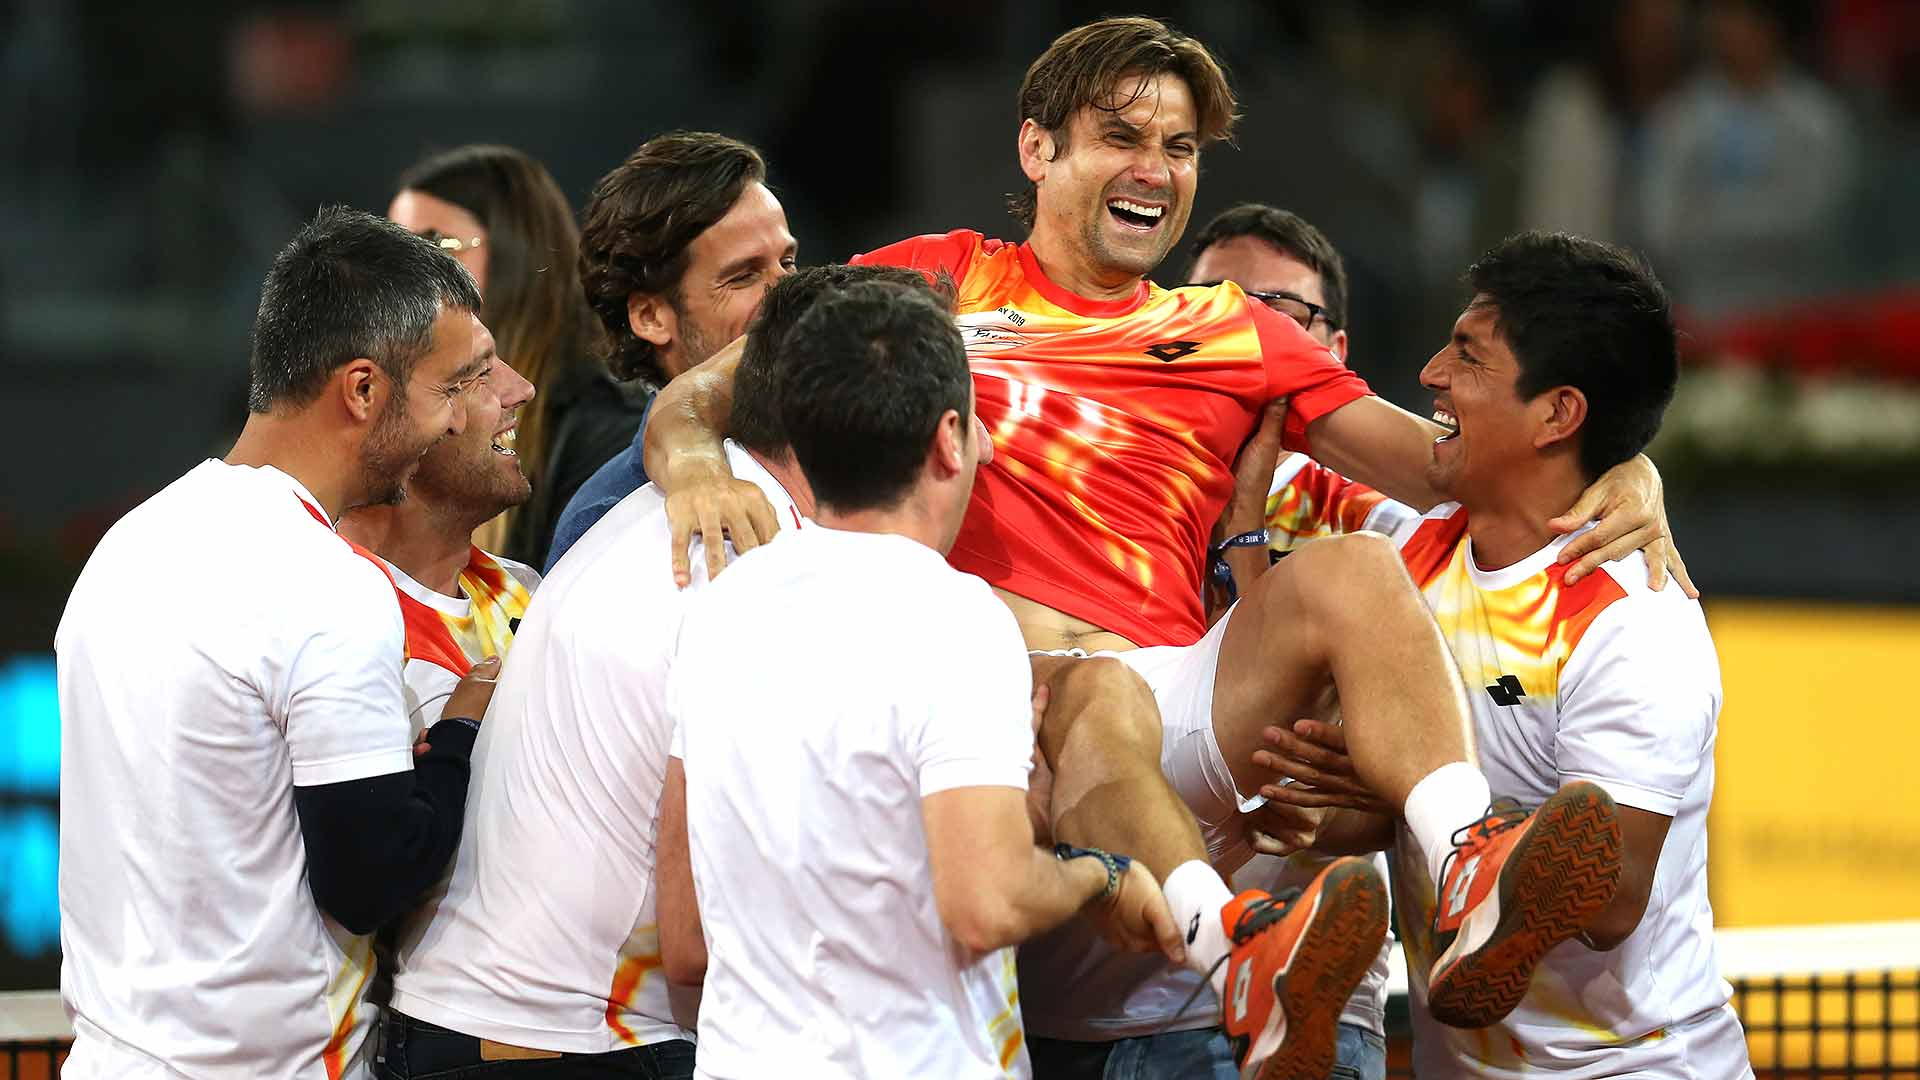 David Ferrer celebrates playing his final match at the Mutua Madrid Open